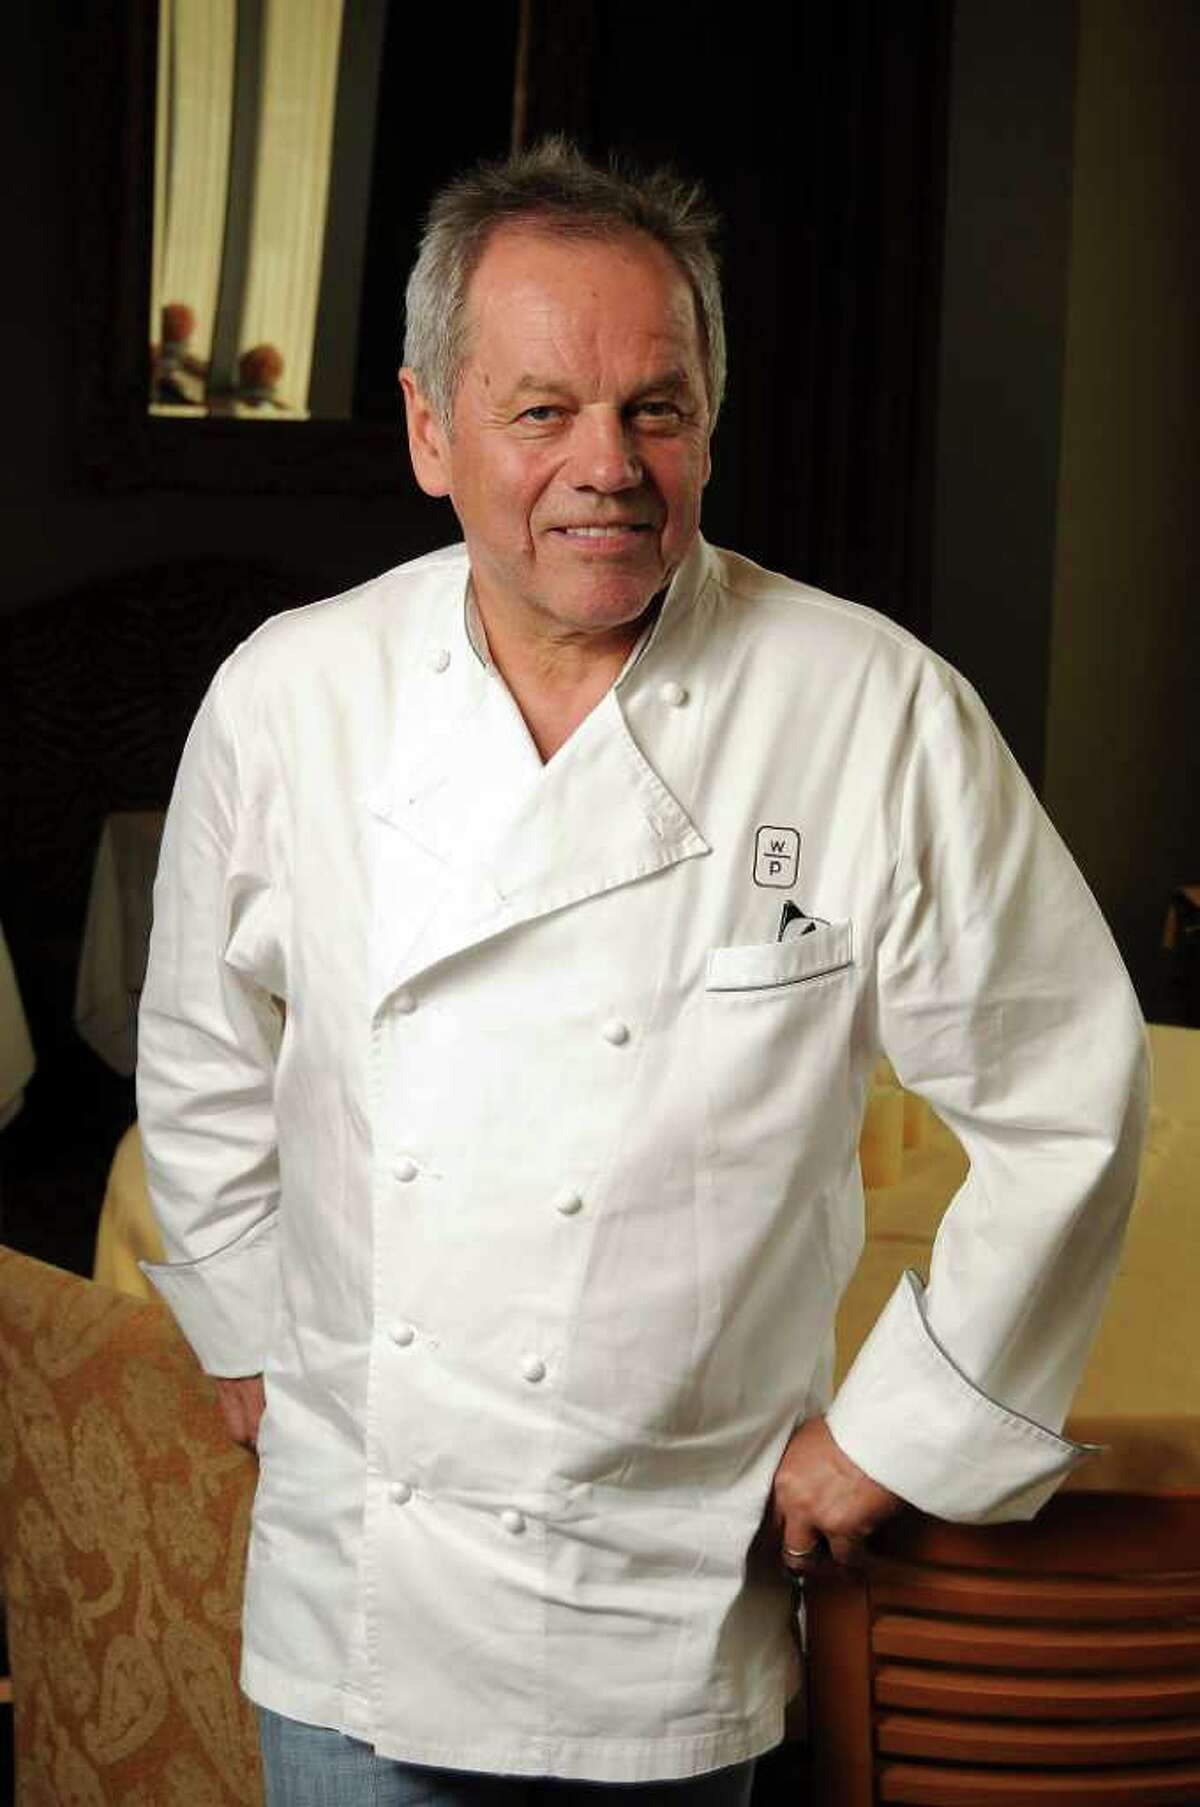 Celebrity chef Wolfgang Puck quietly launched Wolfgang Puck Catering in Houston. >>> Click through to see more on Wolfgang Puck catering.